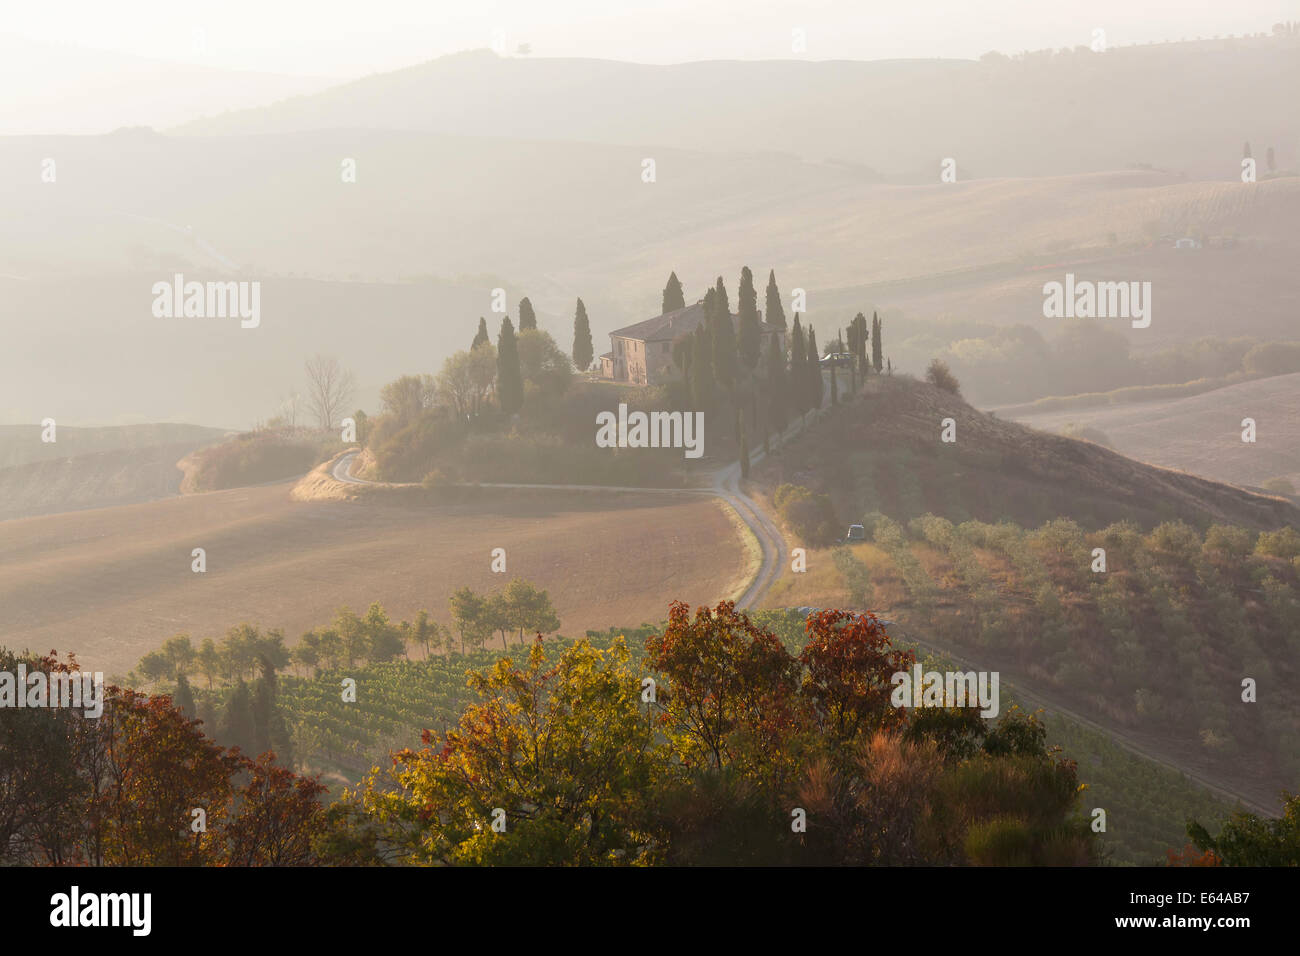 Early morning, Val d'Orcia, Tuscany, Italy - Stock Image